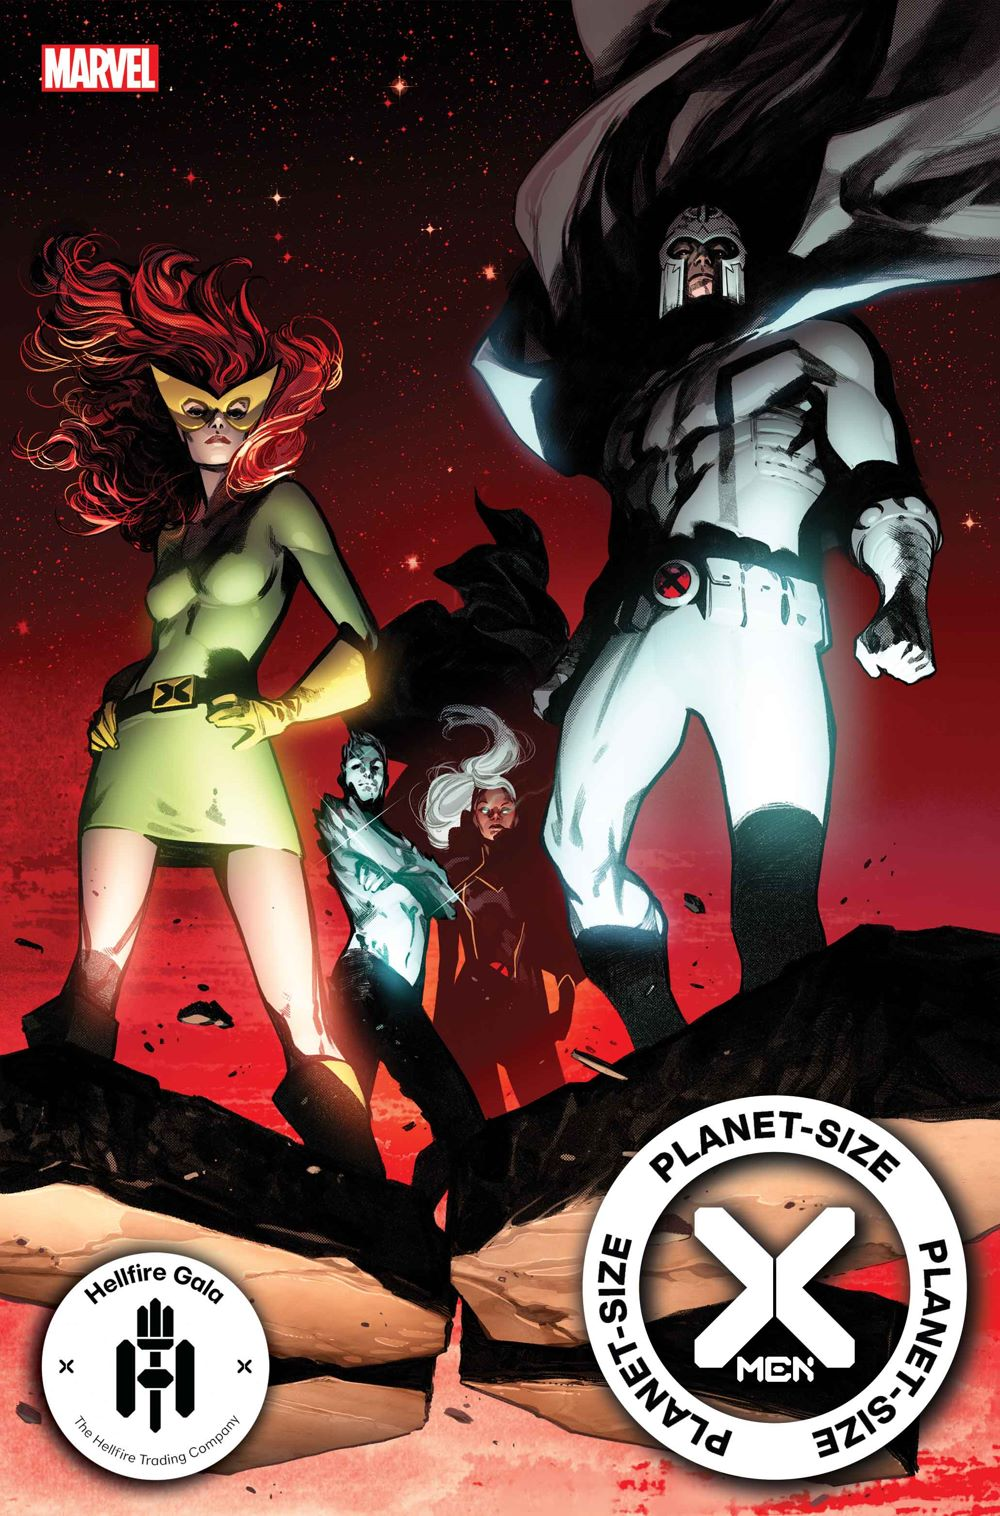 PSXMEN2021001_cov-1 First Look at PLANET-SIZE X-MEN #1 from Marvel Comics